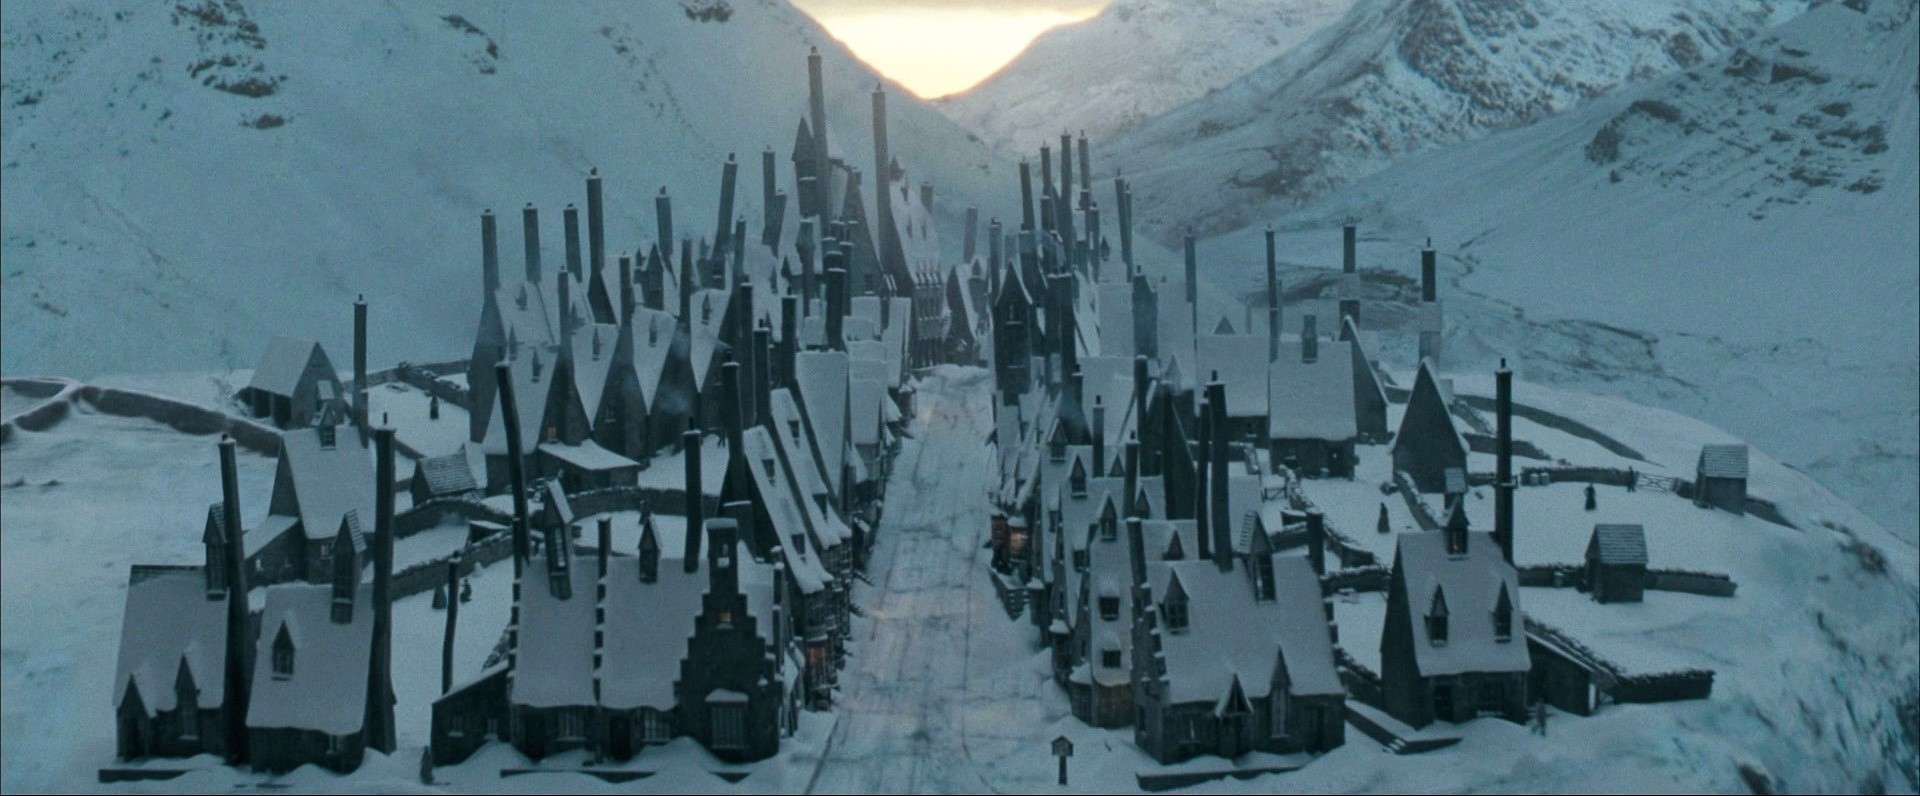 Order-of-the-phoenix-Hogsmeade